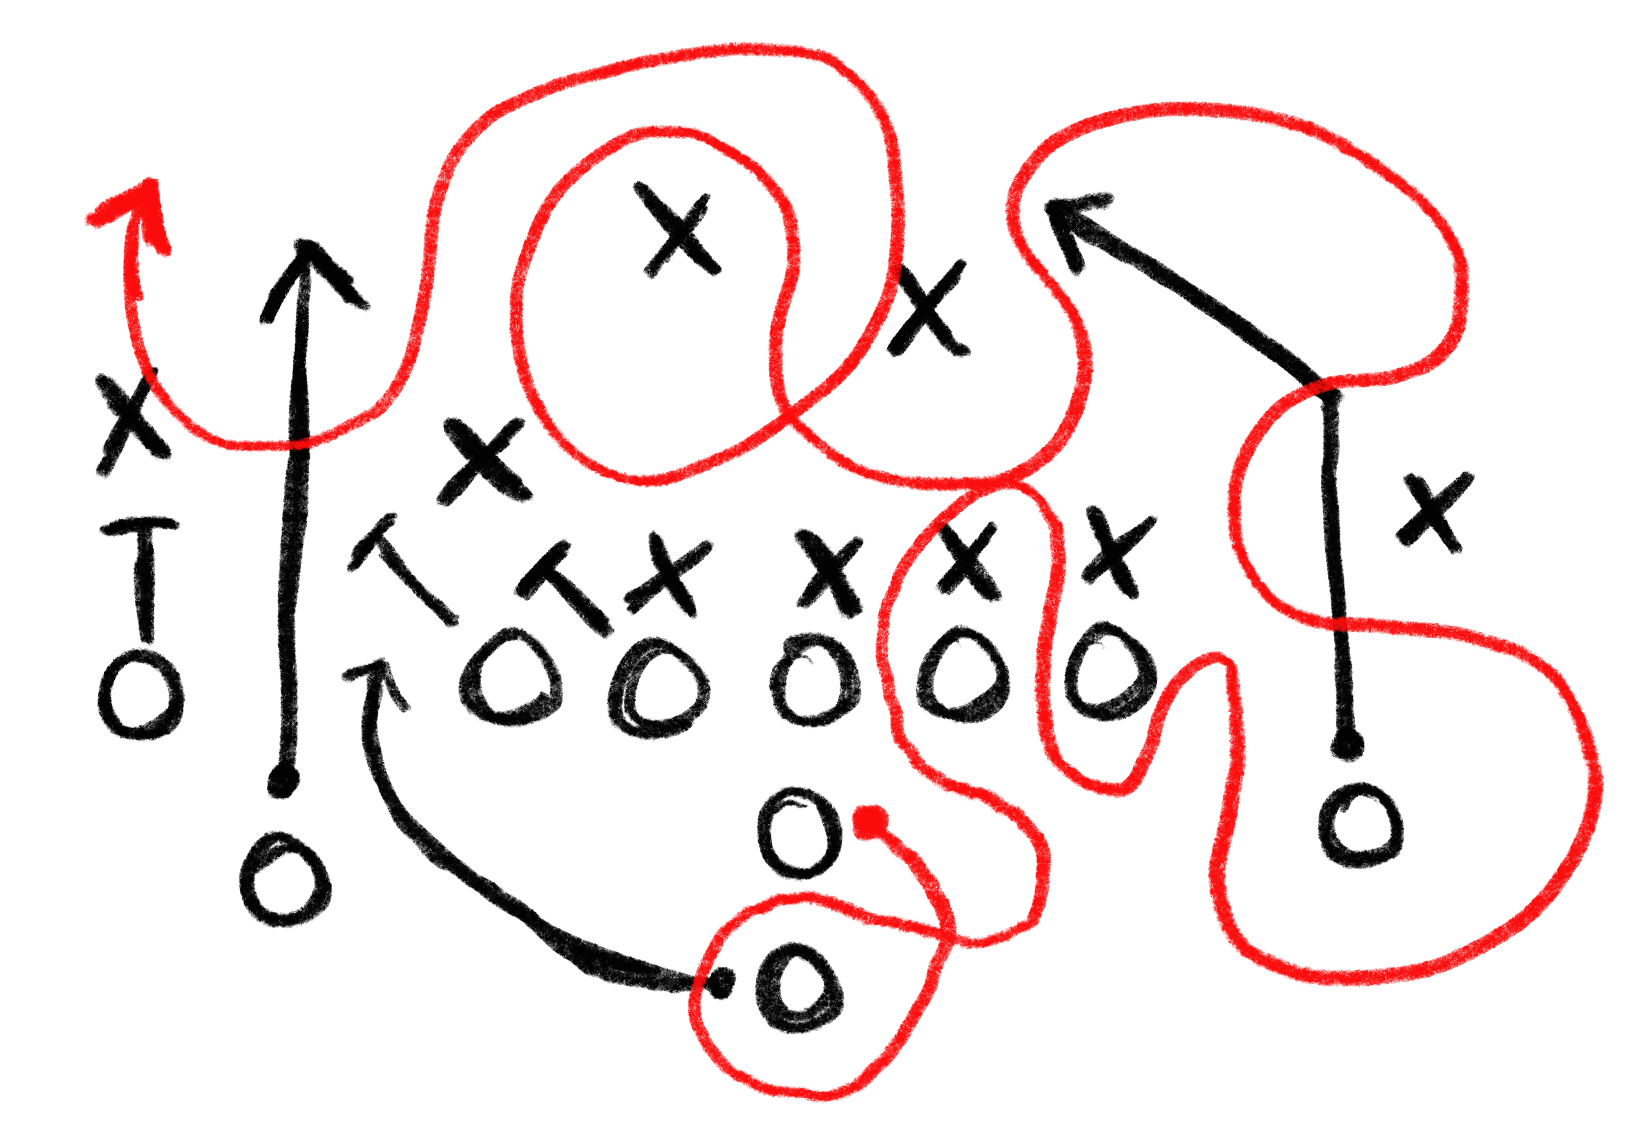 An illustration of a American Football play with Xs, Os, and arrows drawing out the play